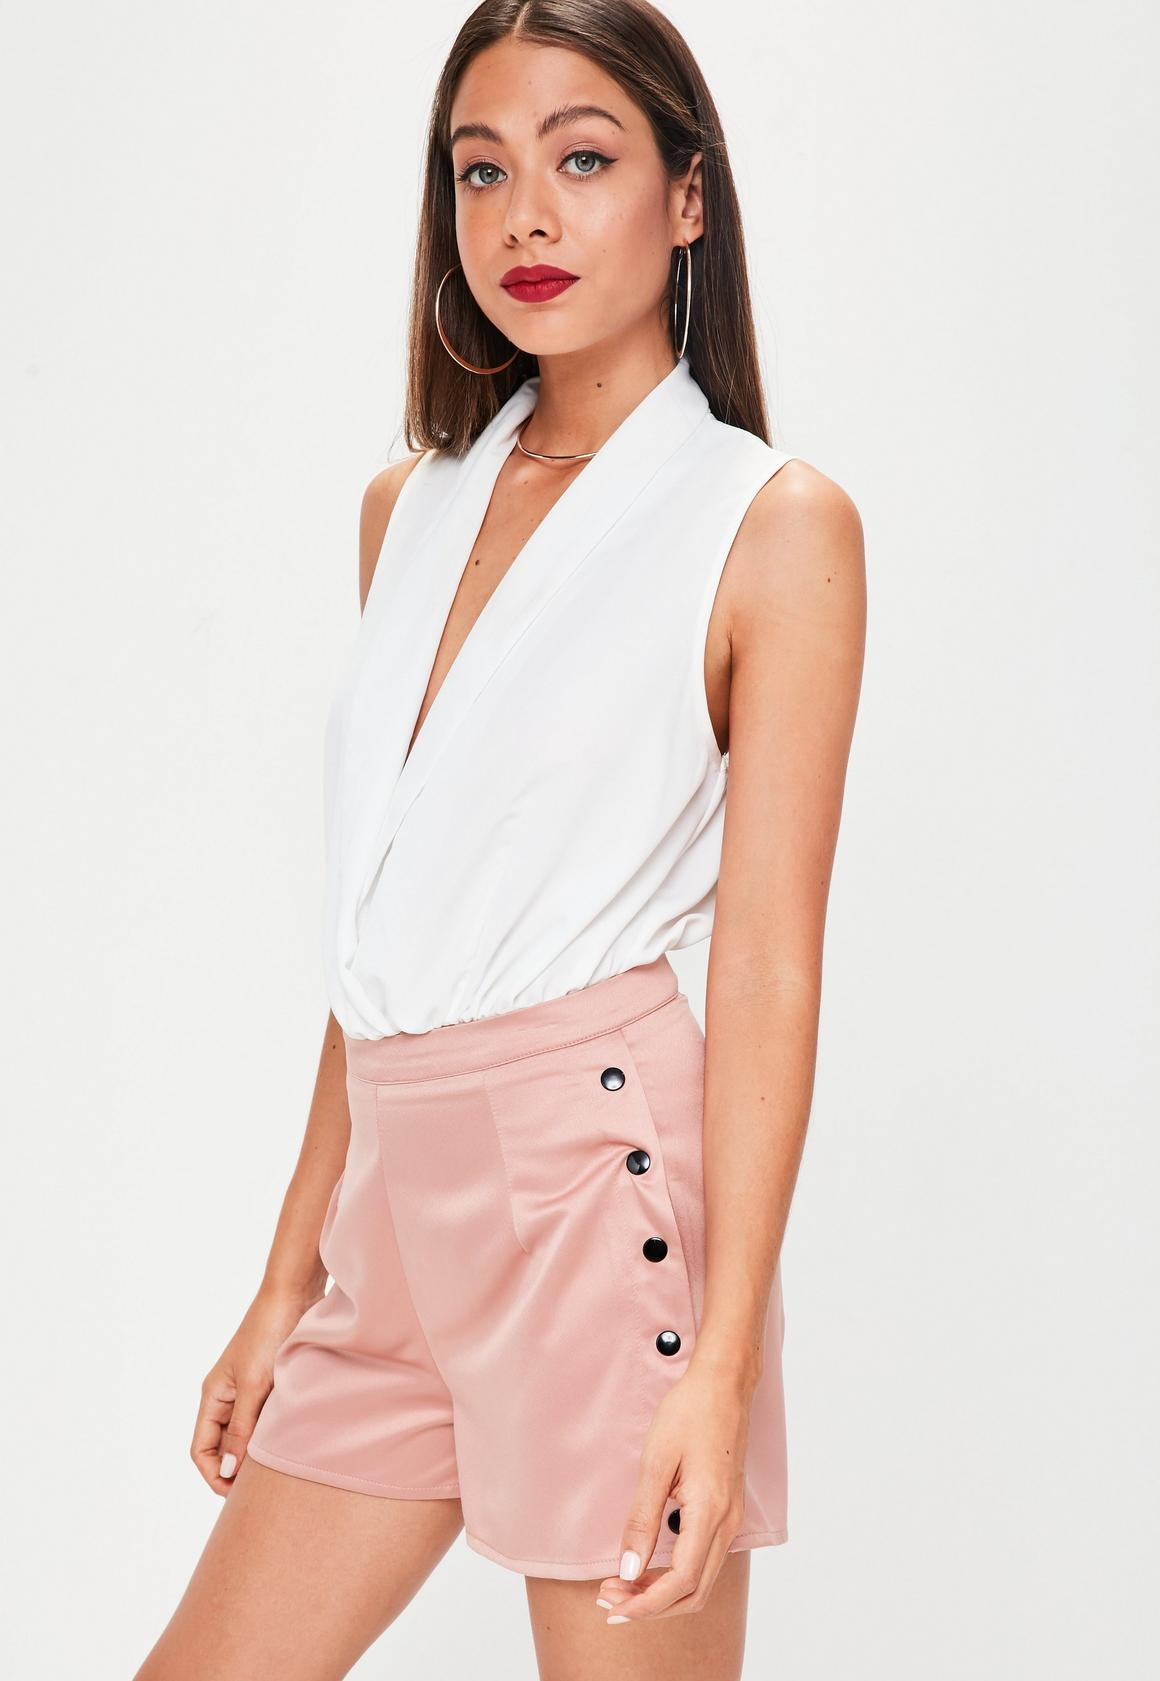 Tailored Shorts - Womens City, Work & Smart Shorts - Missguided